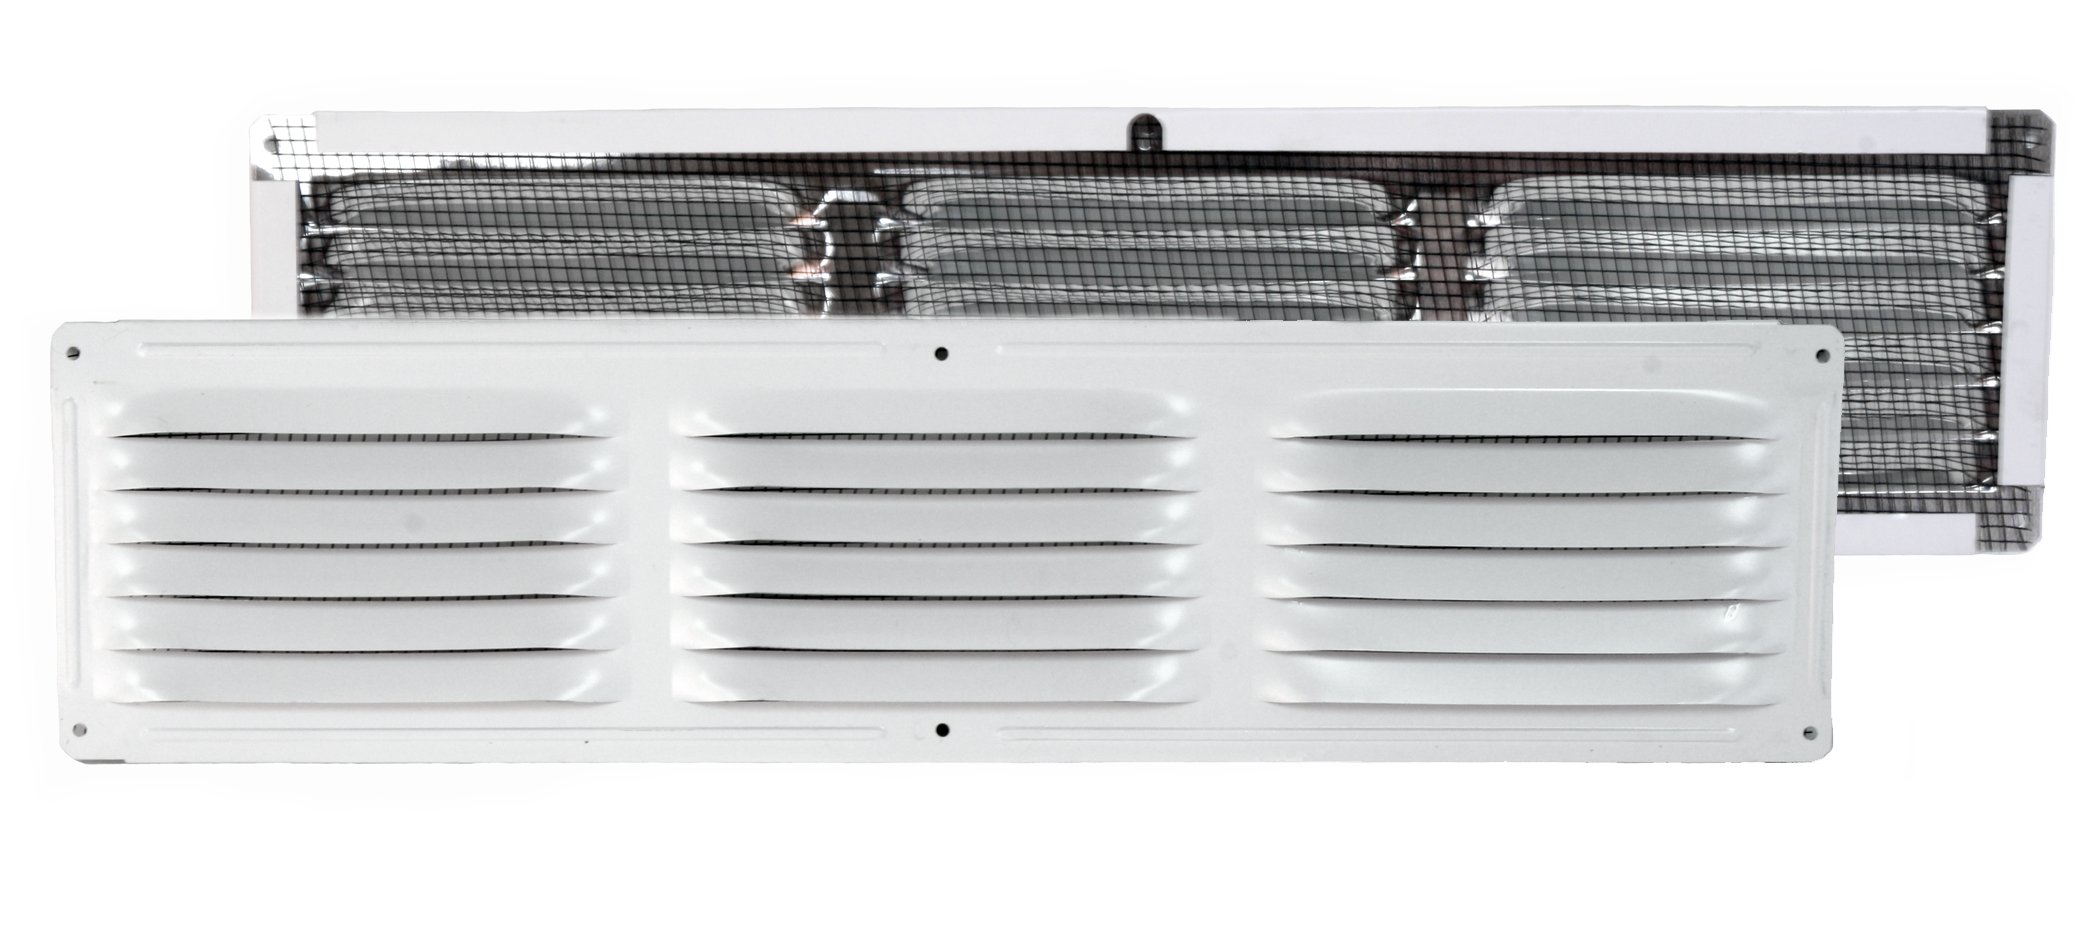 Ventamatic CX64WH 4-Inch by 16-Inch Aluminum Undereave Screened Vent, 24-Pack, White